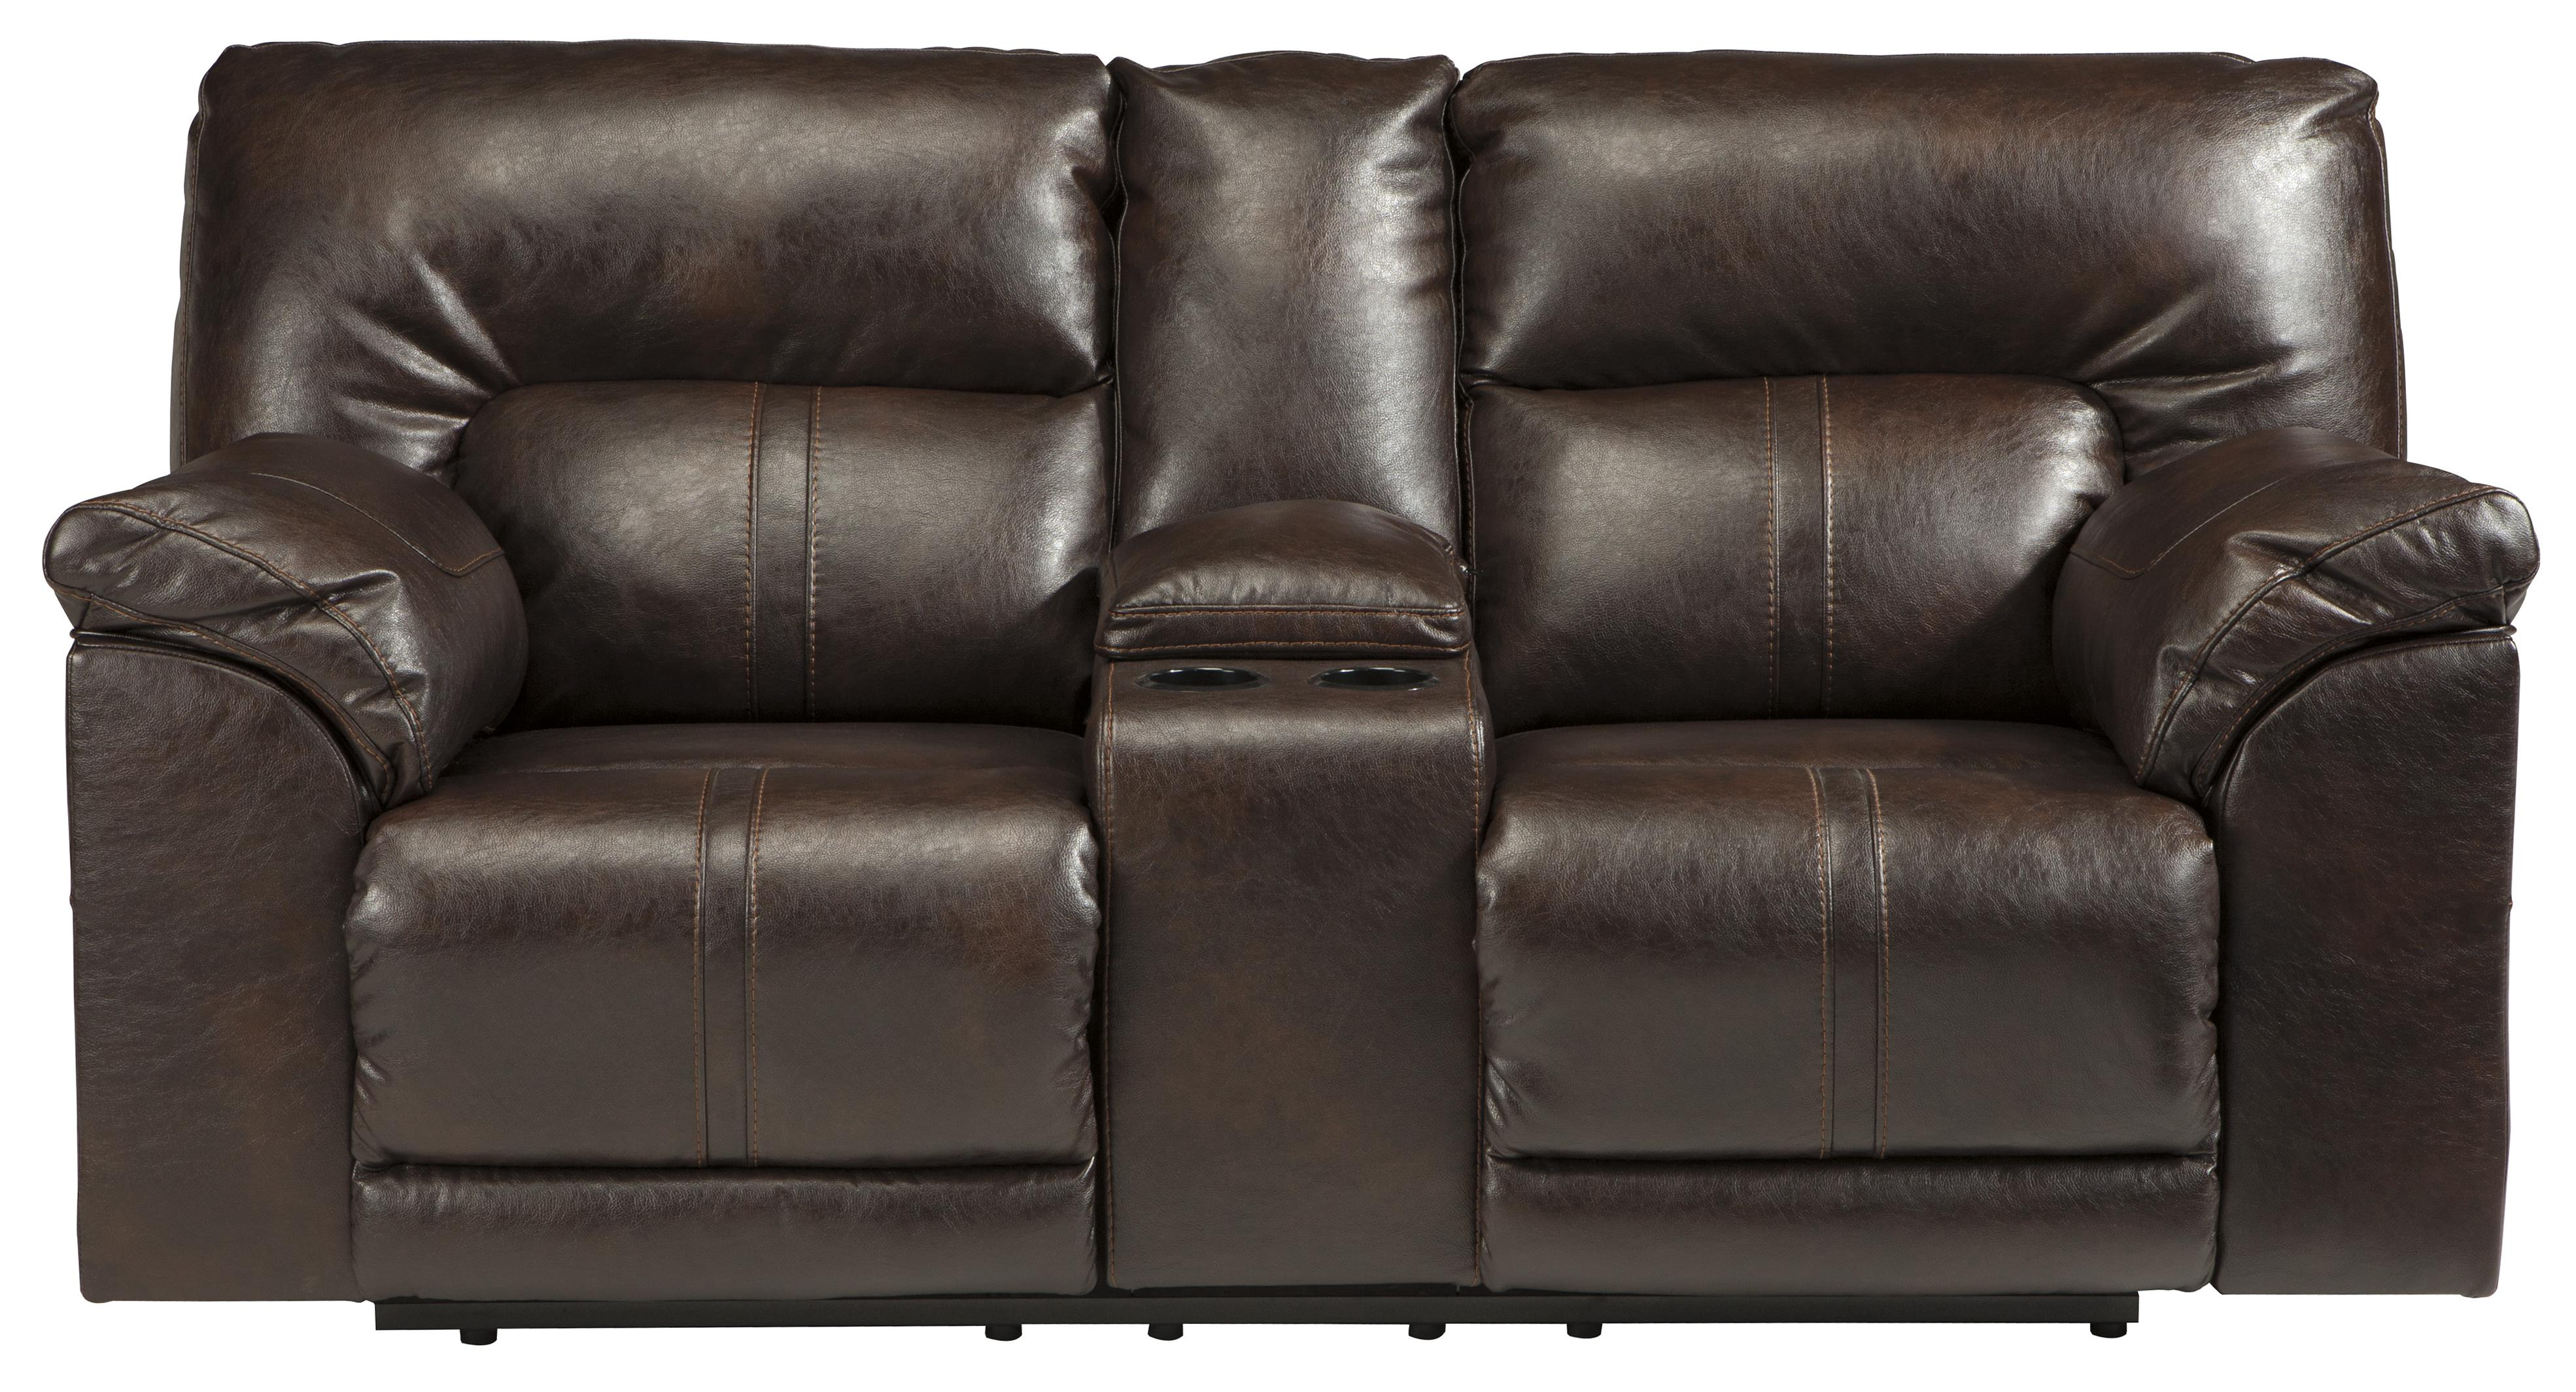 Ashley/Benchcraft Barrettsville DuraBlend® Double Rec Power Loveseat w/ Console - Item Number: 4730196